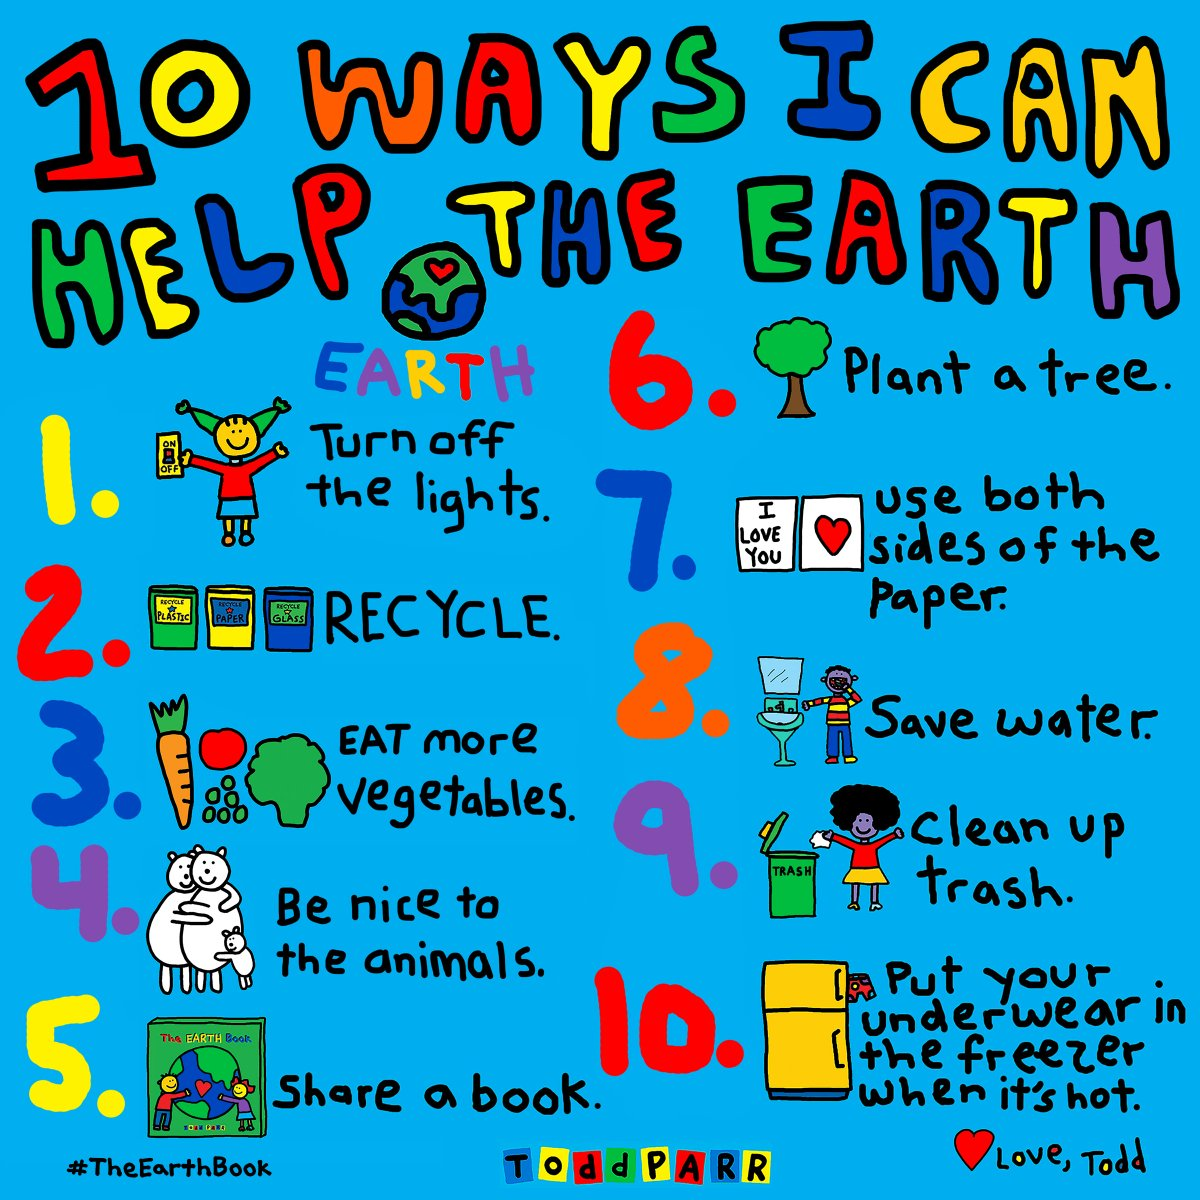 Todd Parr On Twitter Happy Earthday Here Are Some